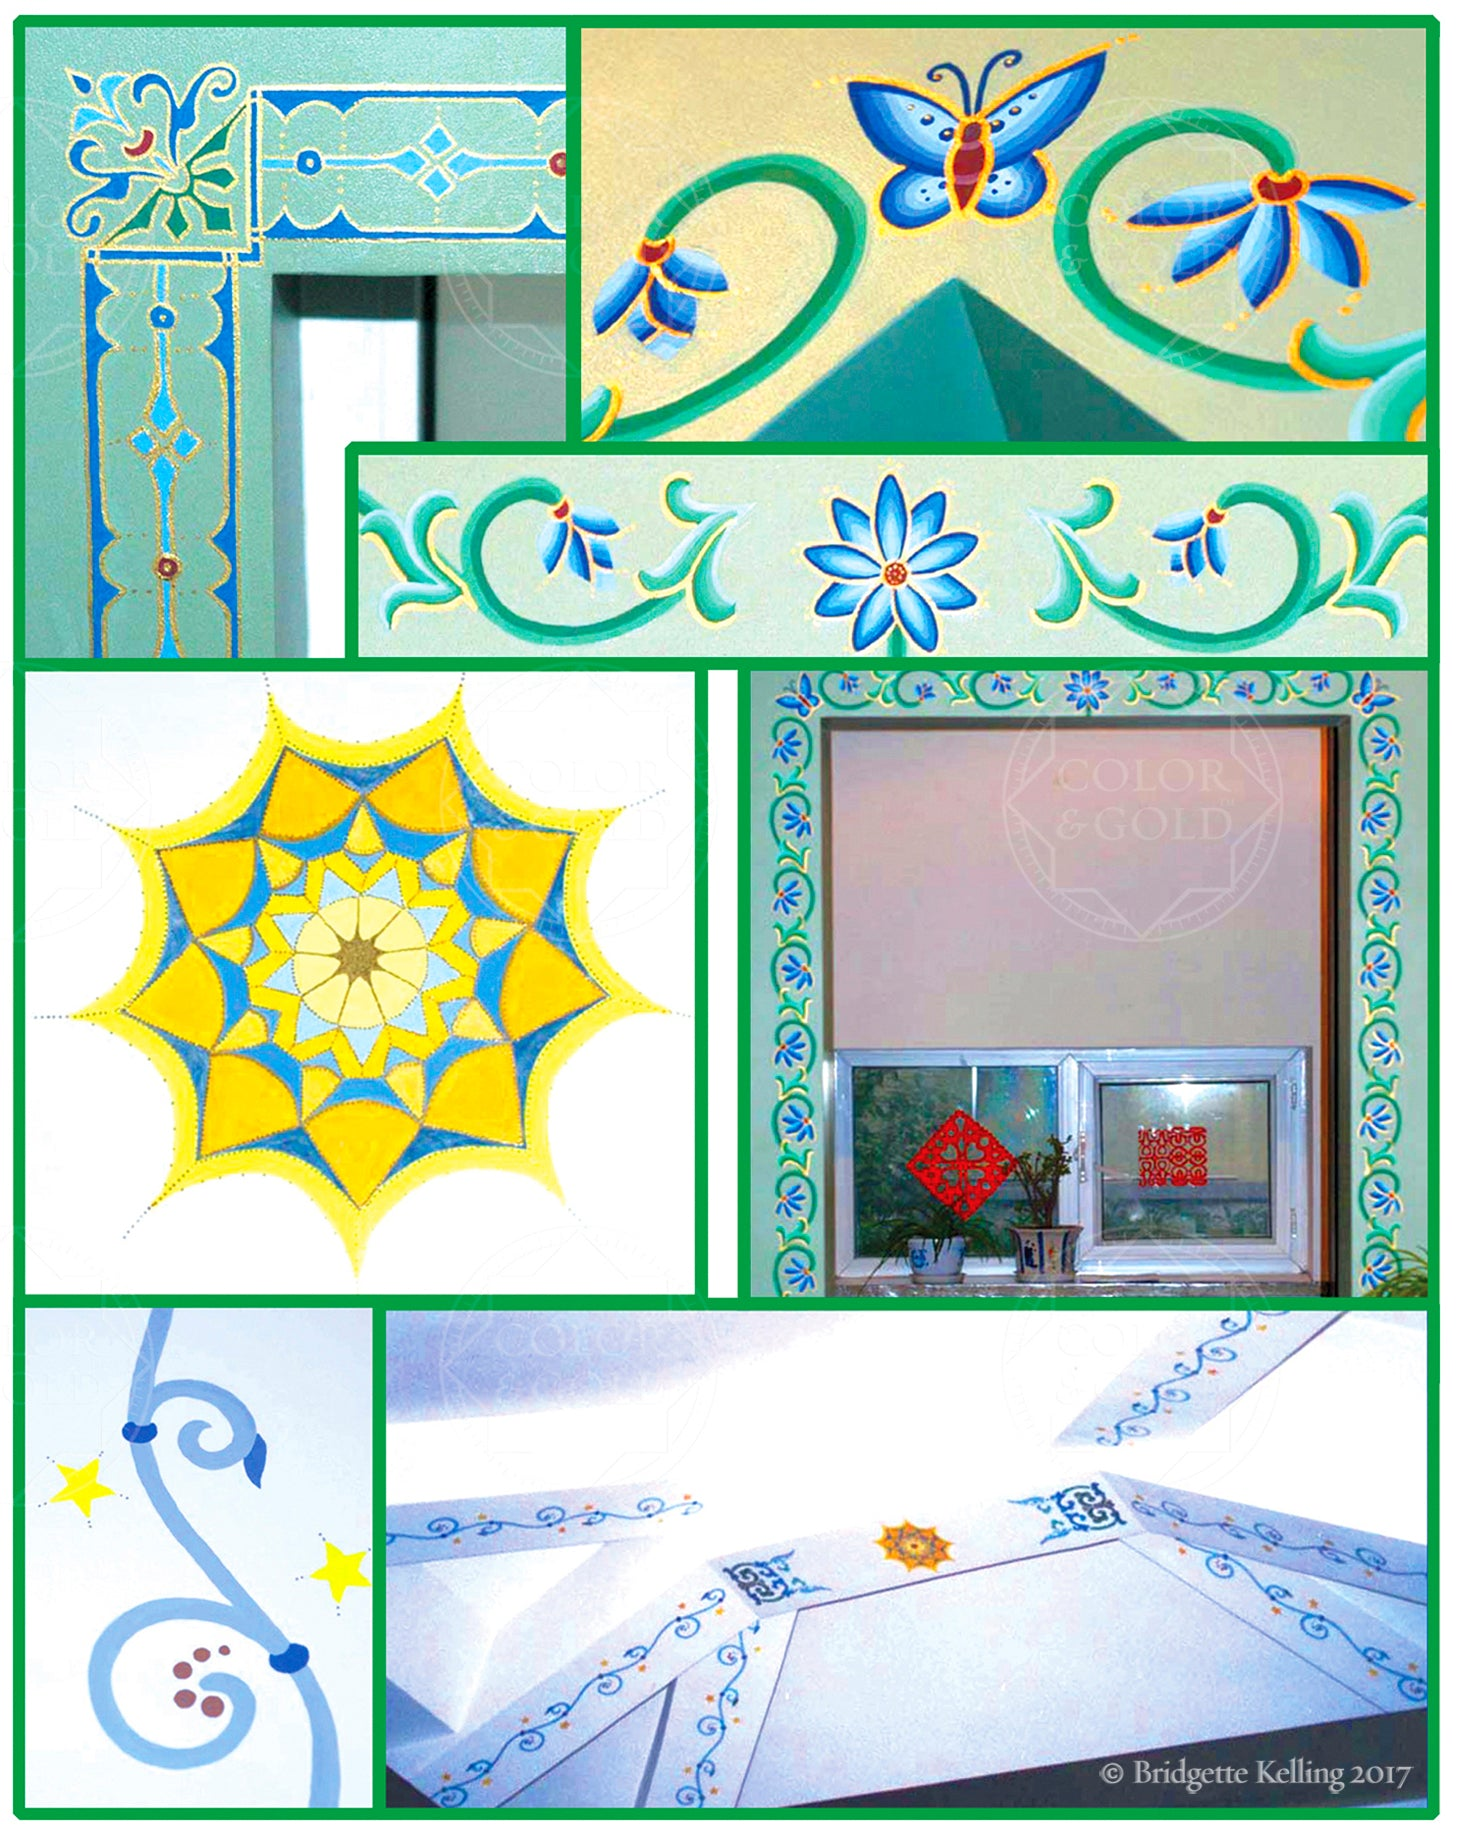 Paintings for a school in Beijing using school colors & international designs - Color & Gold LLC © Bridgette Kelling